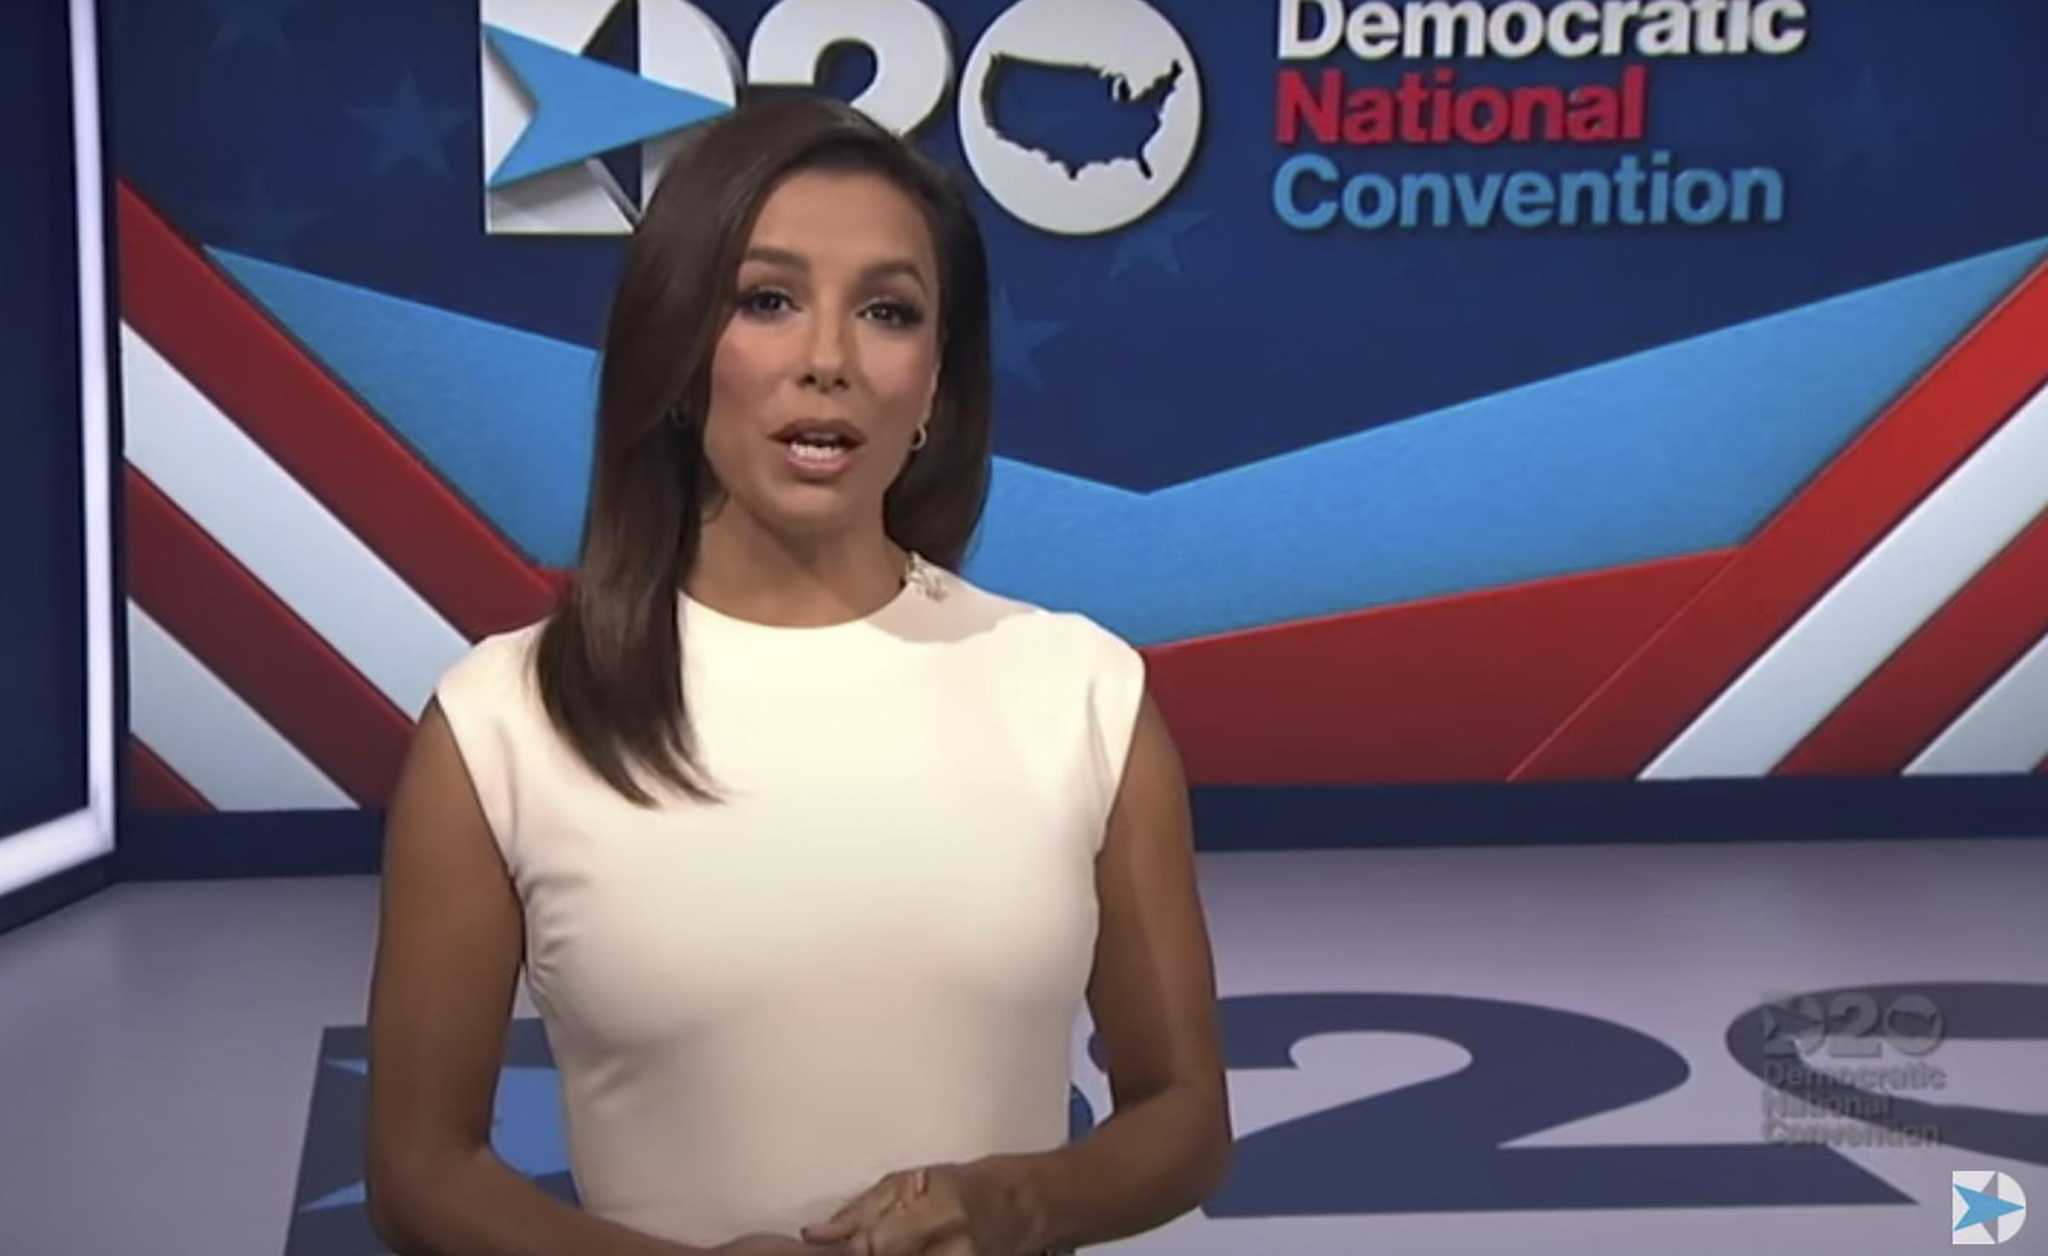 Register to vote and you could get a call from Eva Longoria